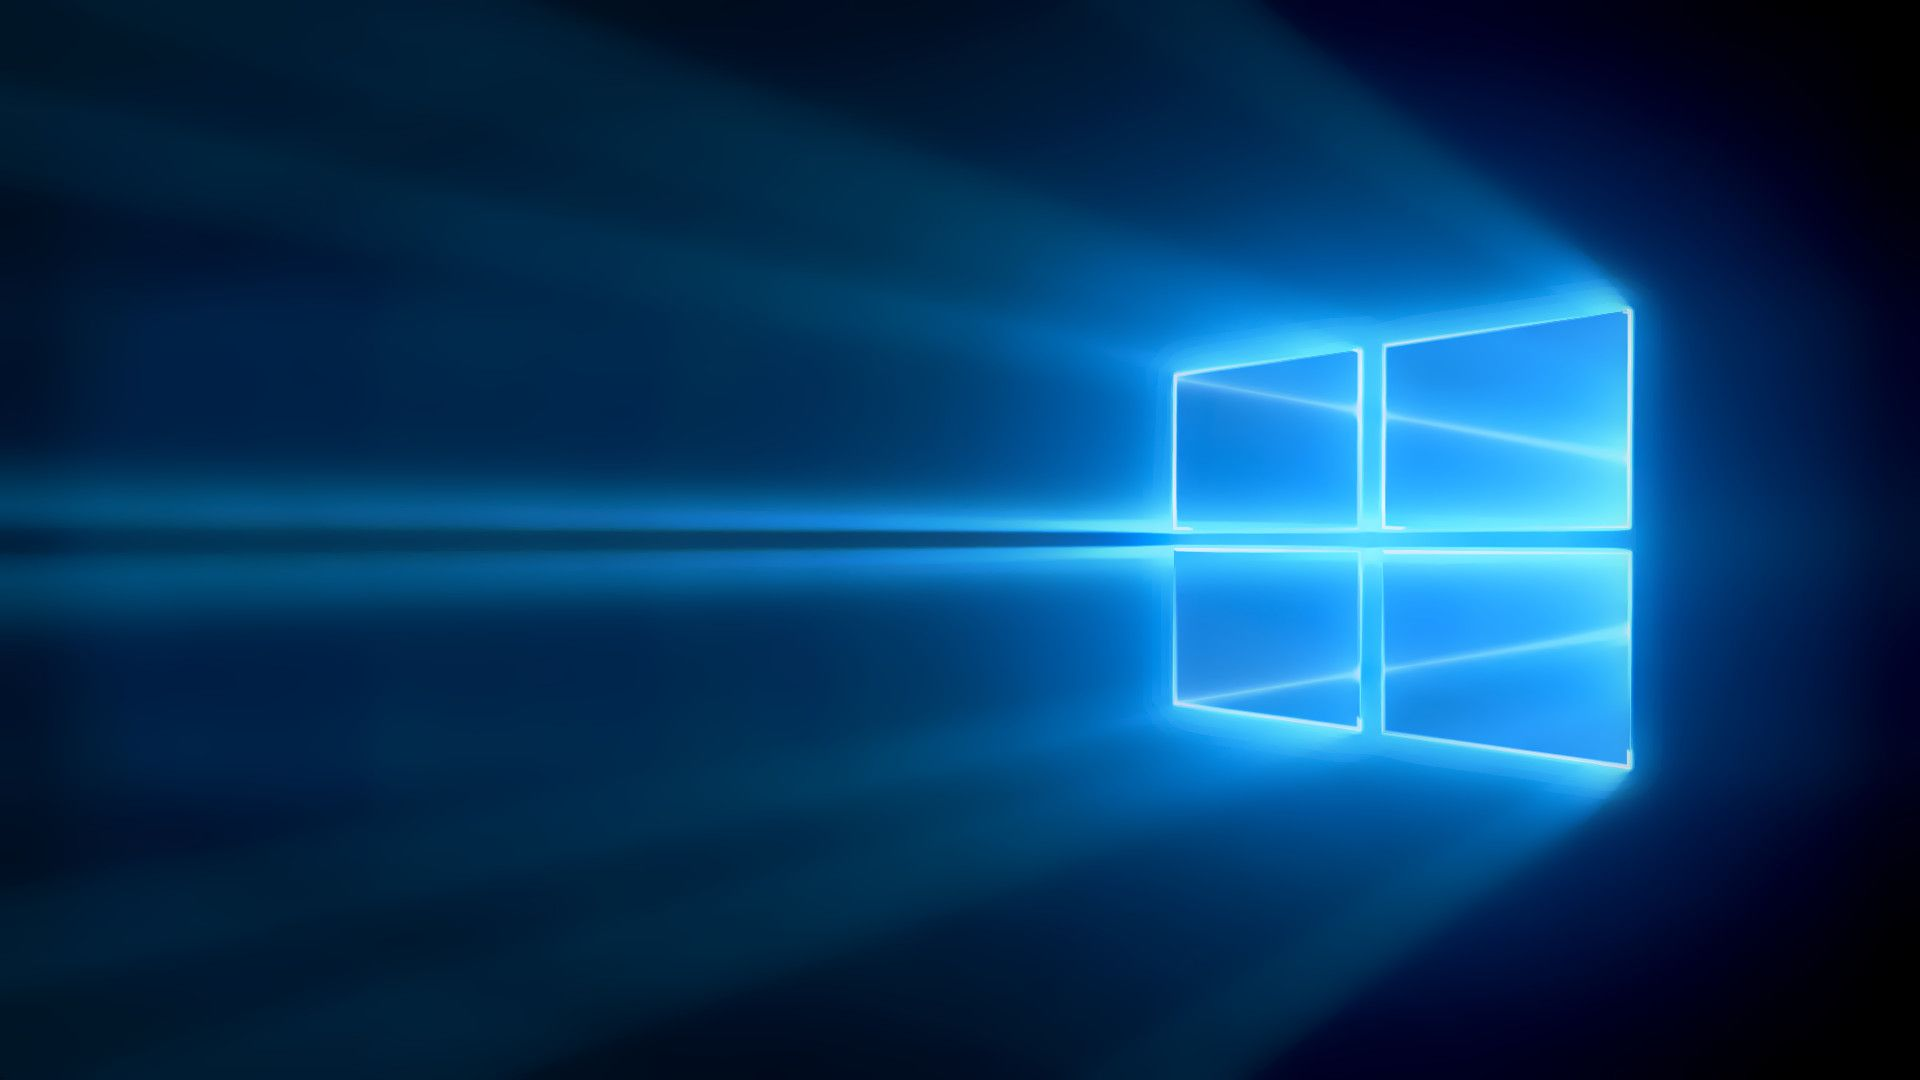 Windows Blue Hd Wallpapers Top Free Windows Blue Hd Backgrounds Wallpaperaccess